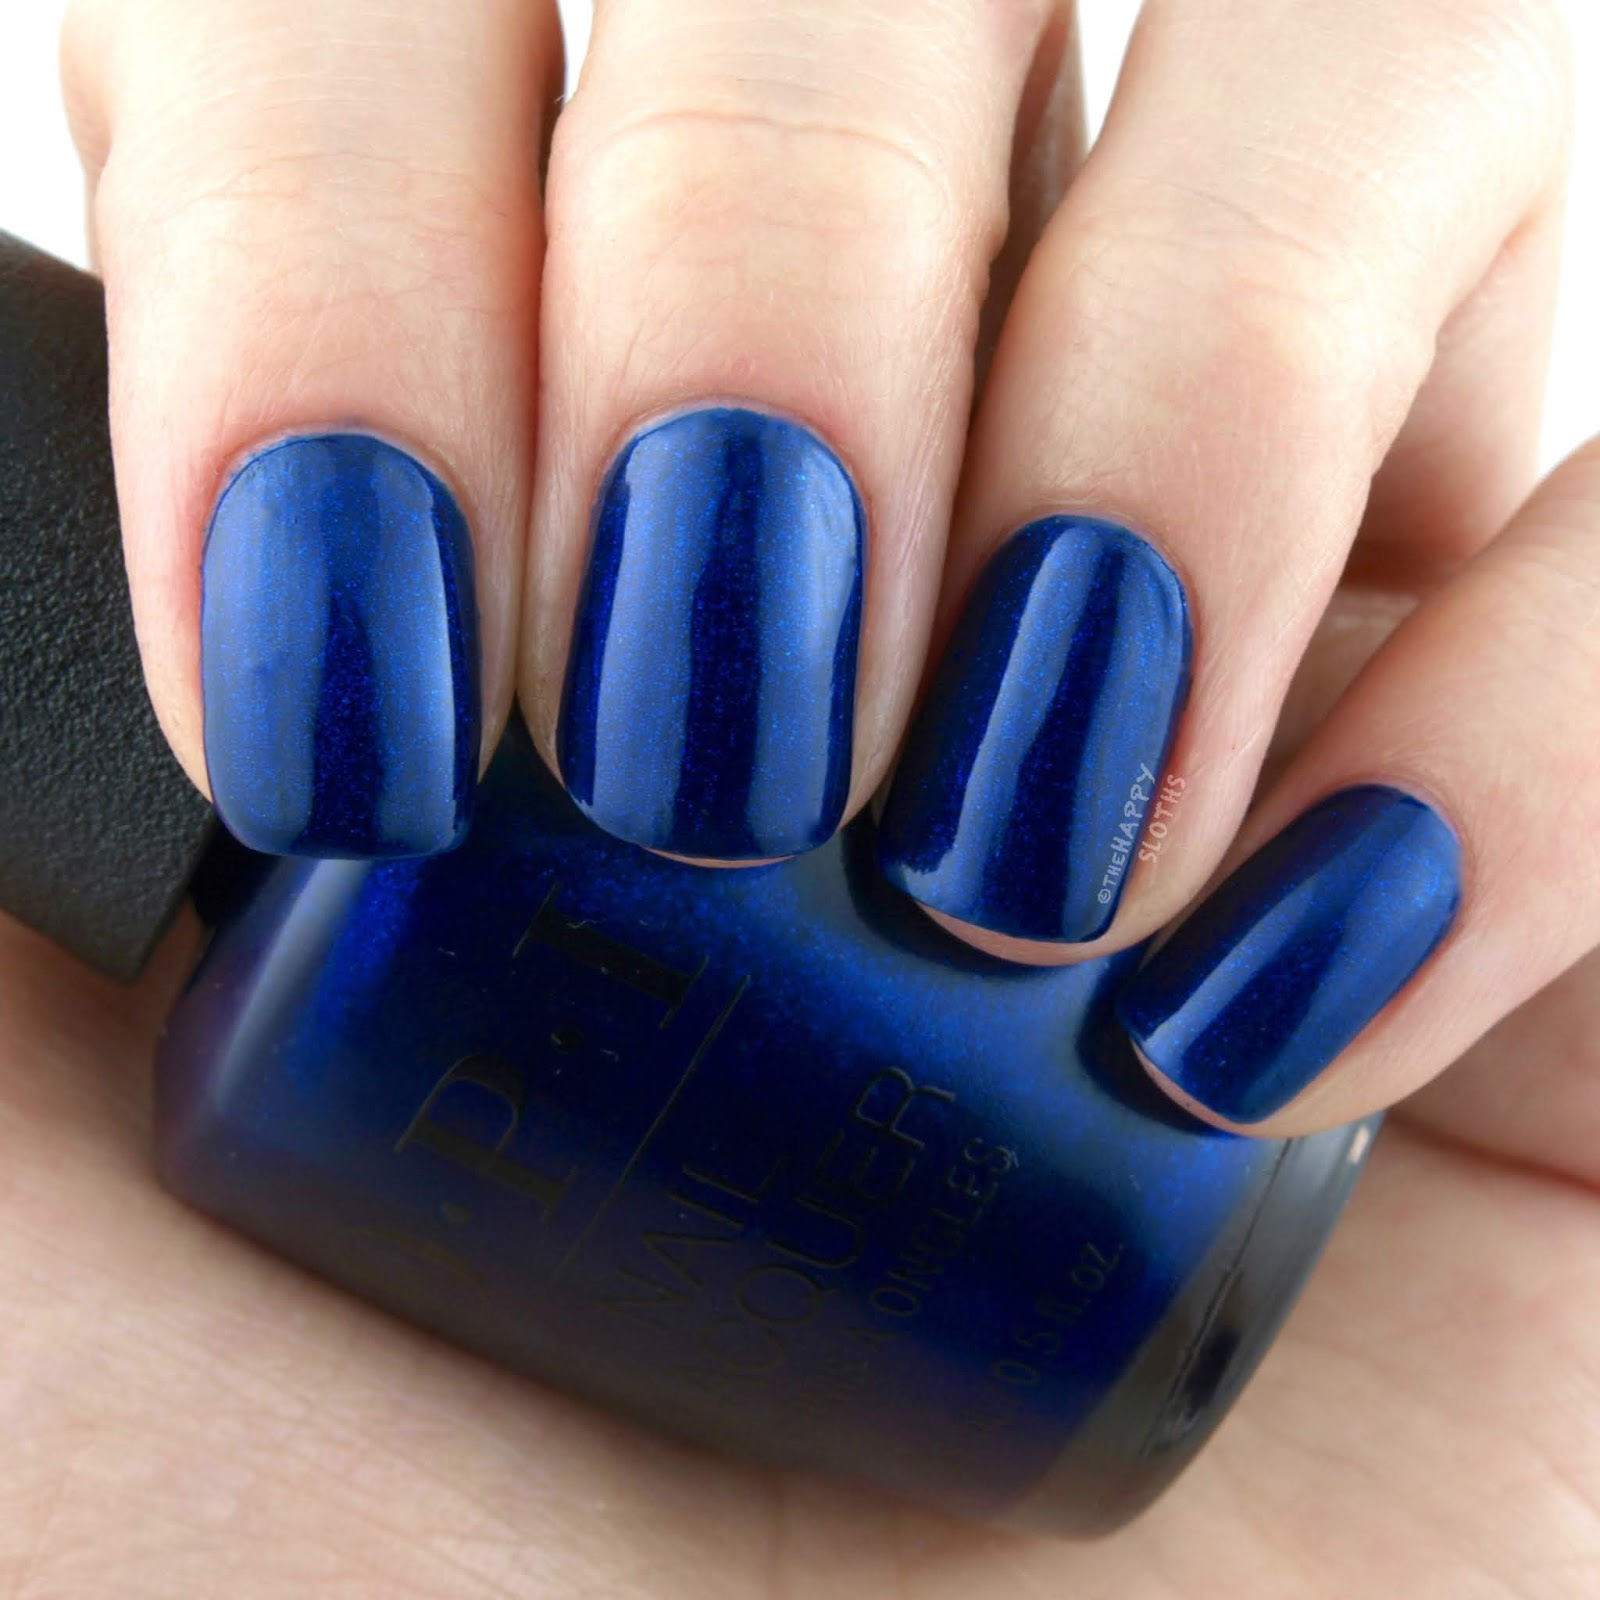 OPI Spring 2019 Tokyo Collection | Chopstix and Stones: Review and Swatches